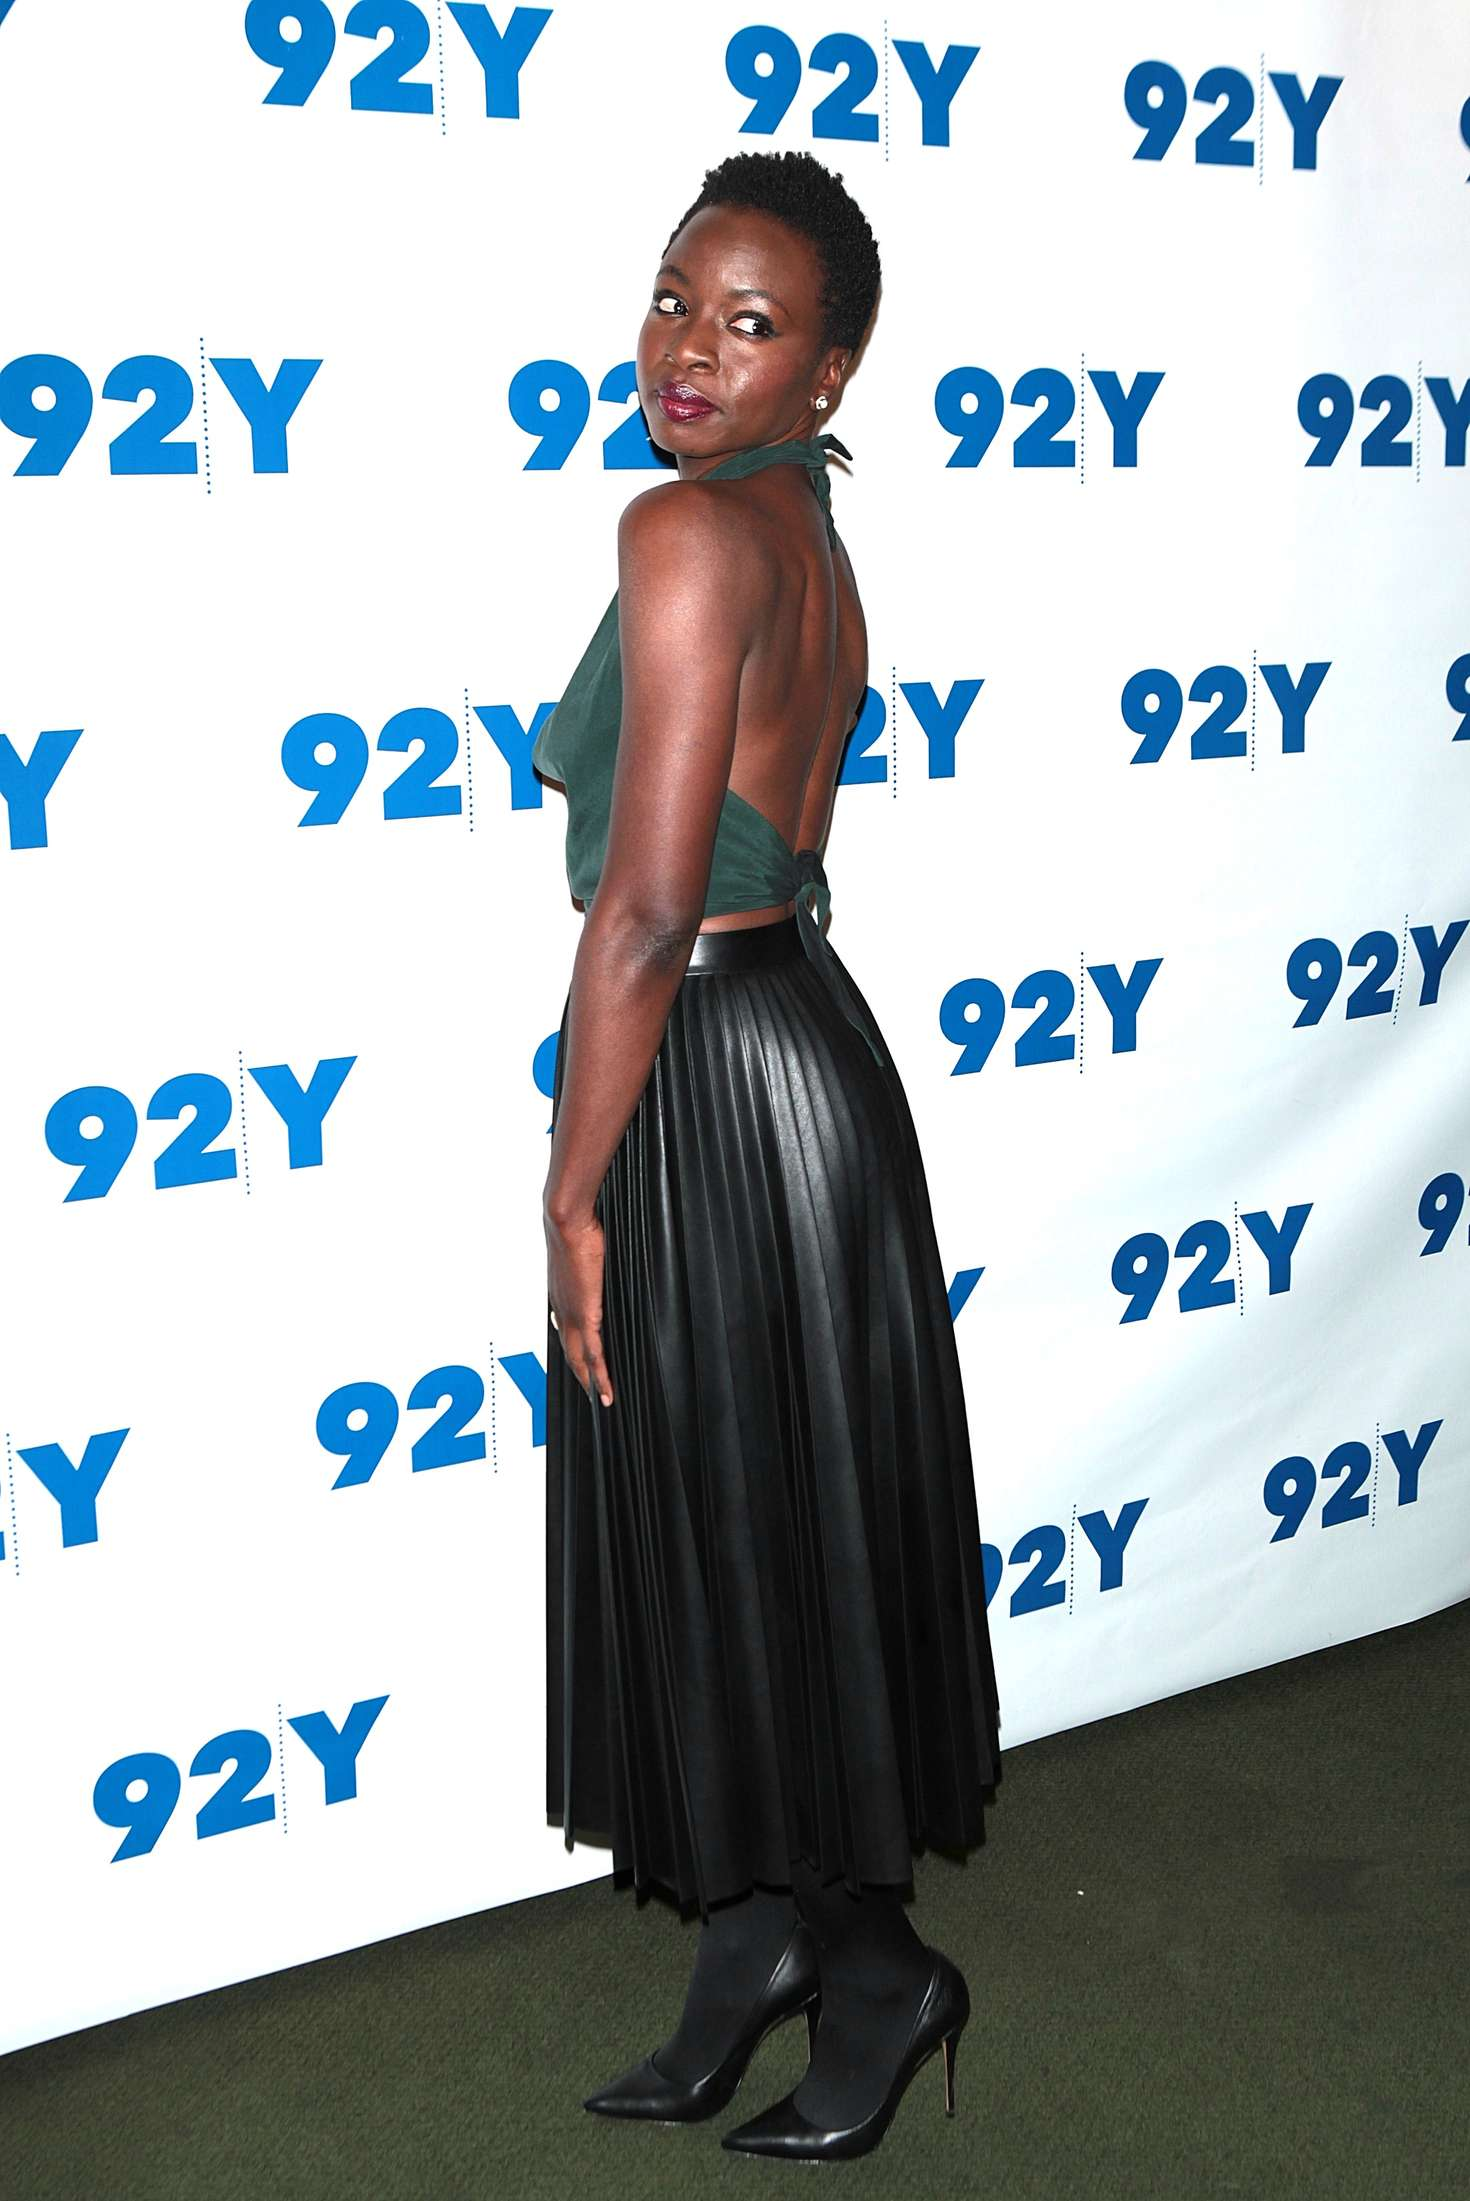 Danai Gurira The Walking Dead Screening in New York